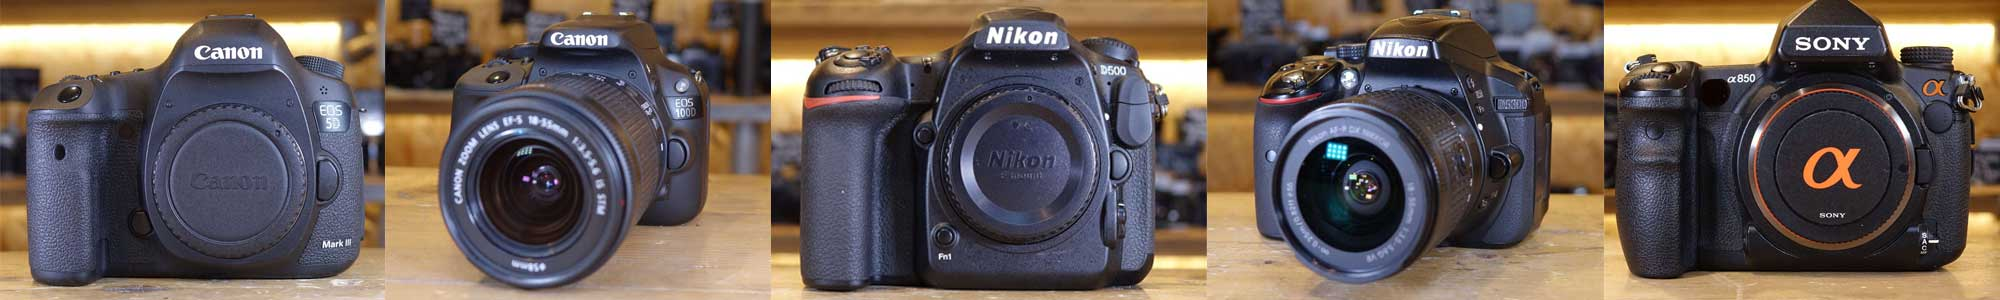 Used DSLR cameras from Harrison Cameras